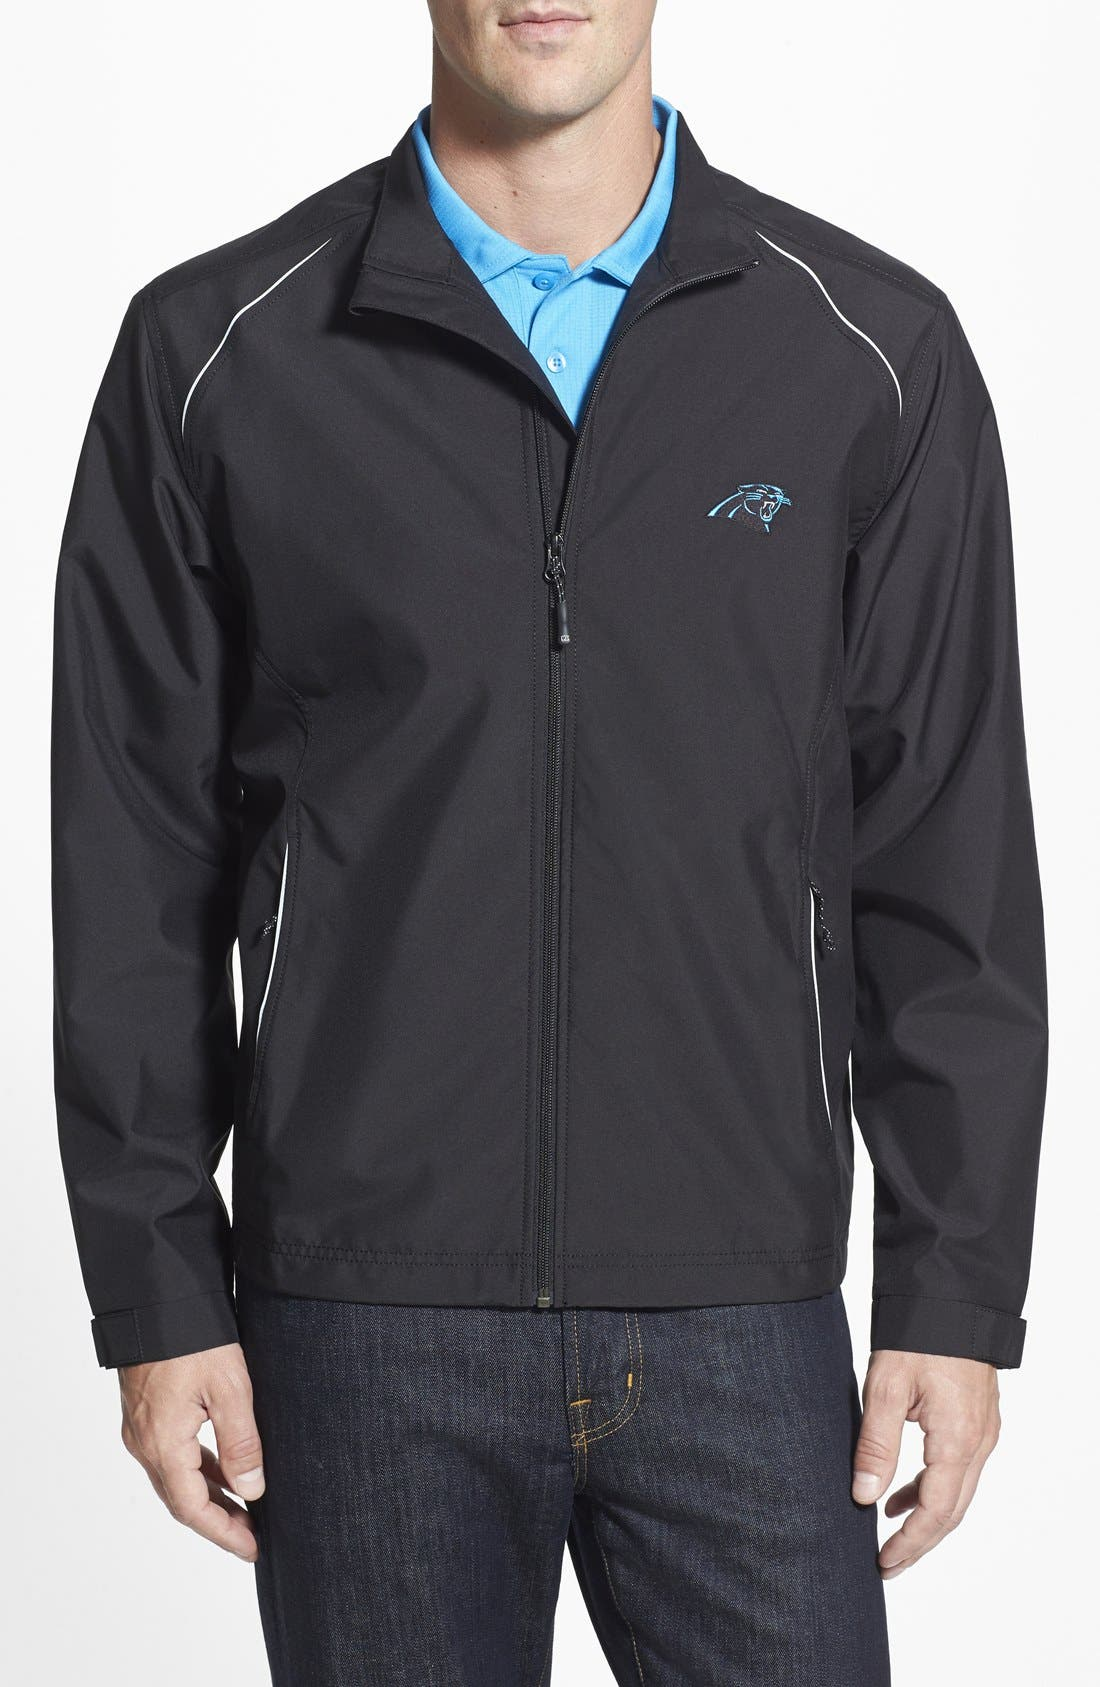 Cutter & Buck 'Carolina Panthers - Beacon' WeatherTec Wind & Water Resistant Jacket (Big & Tall)